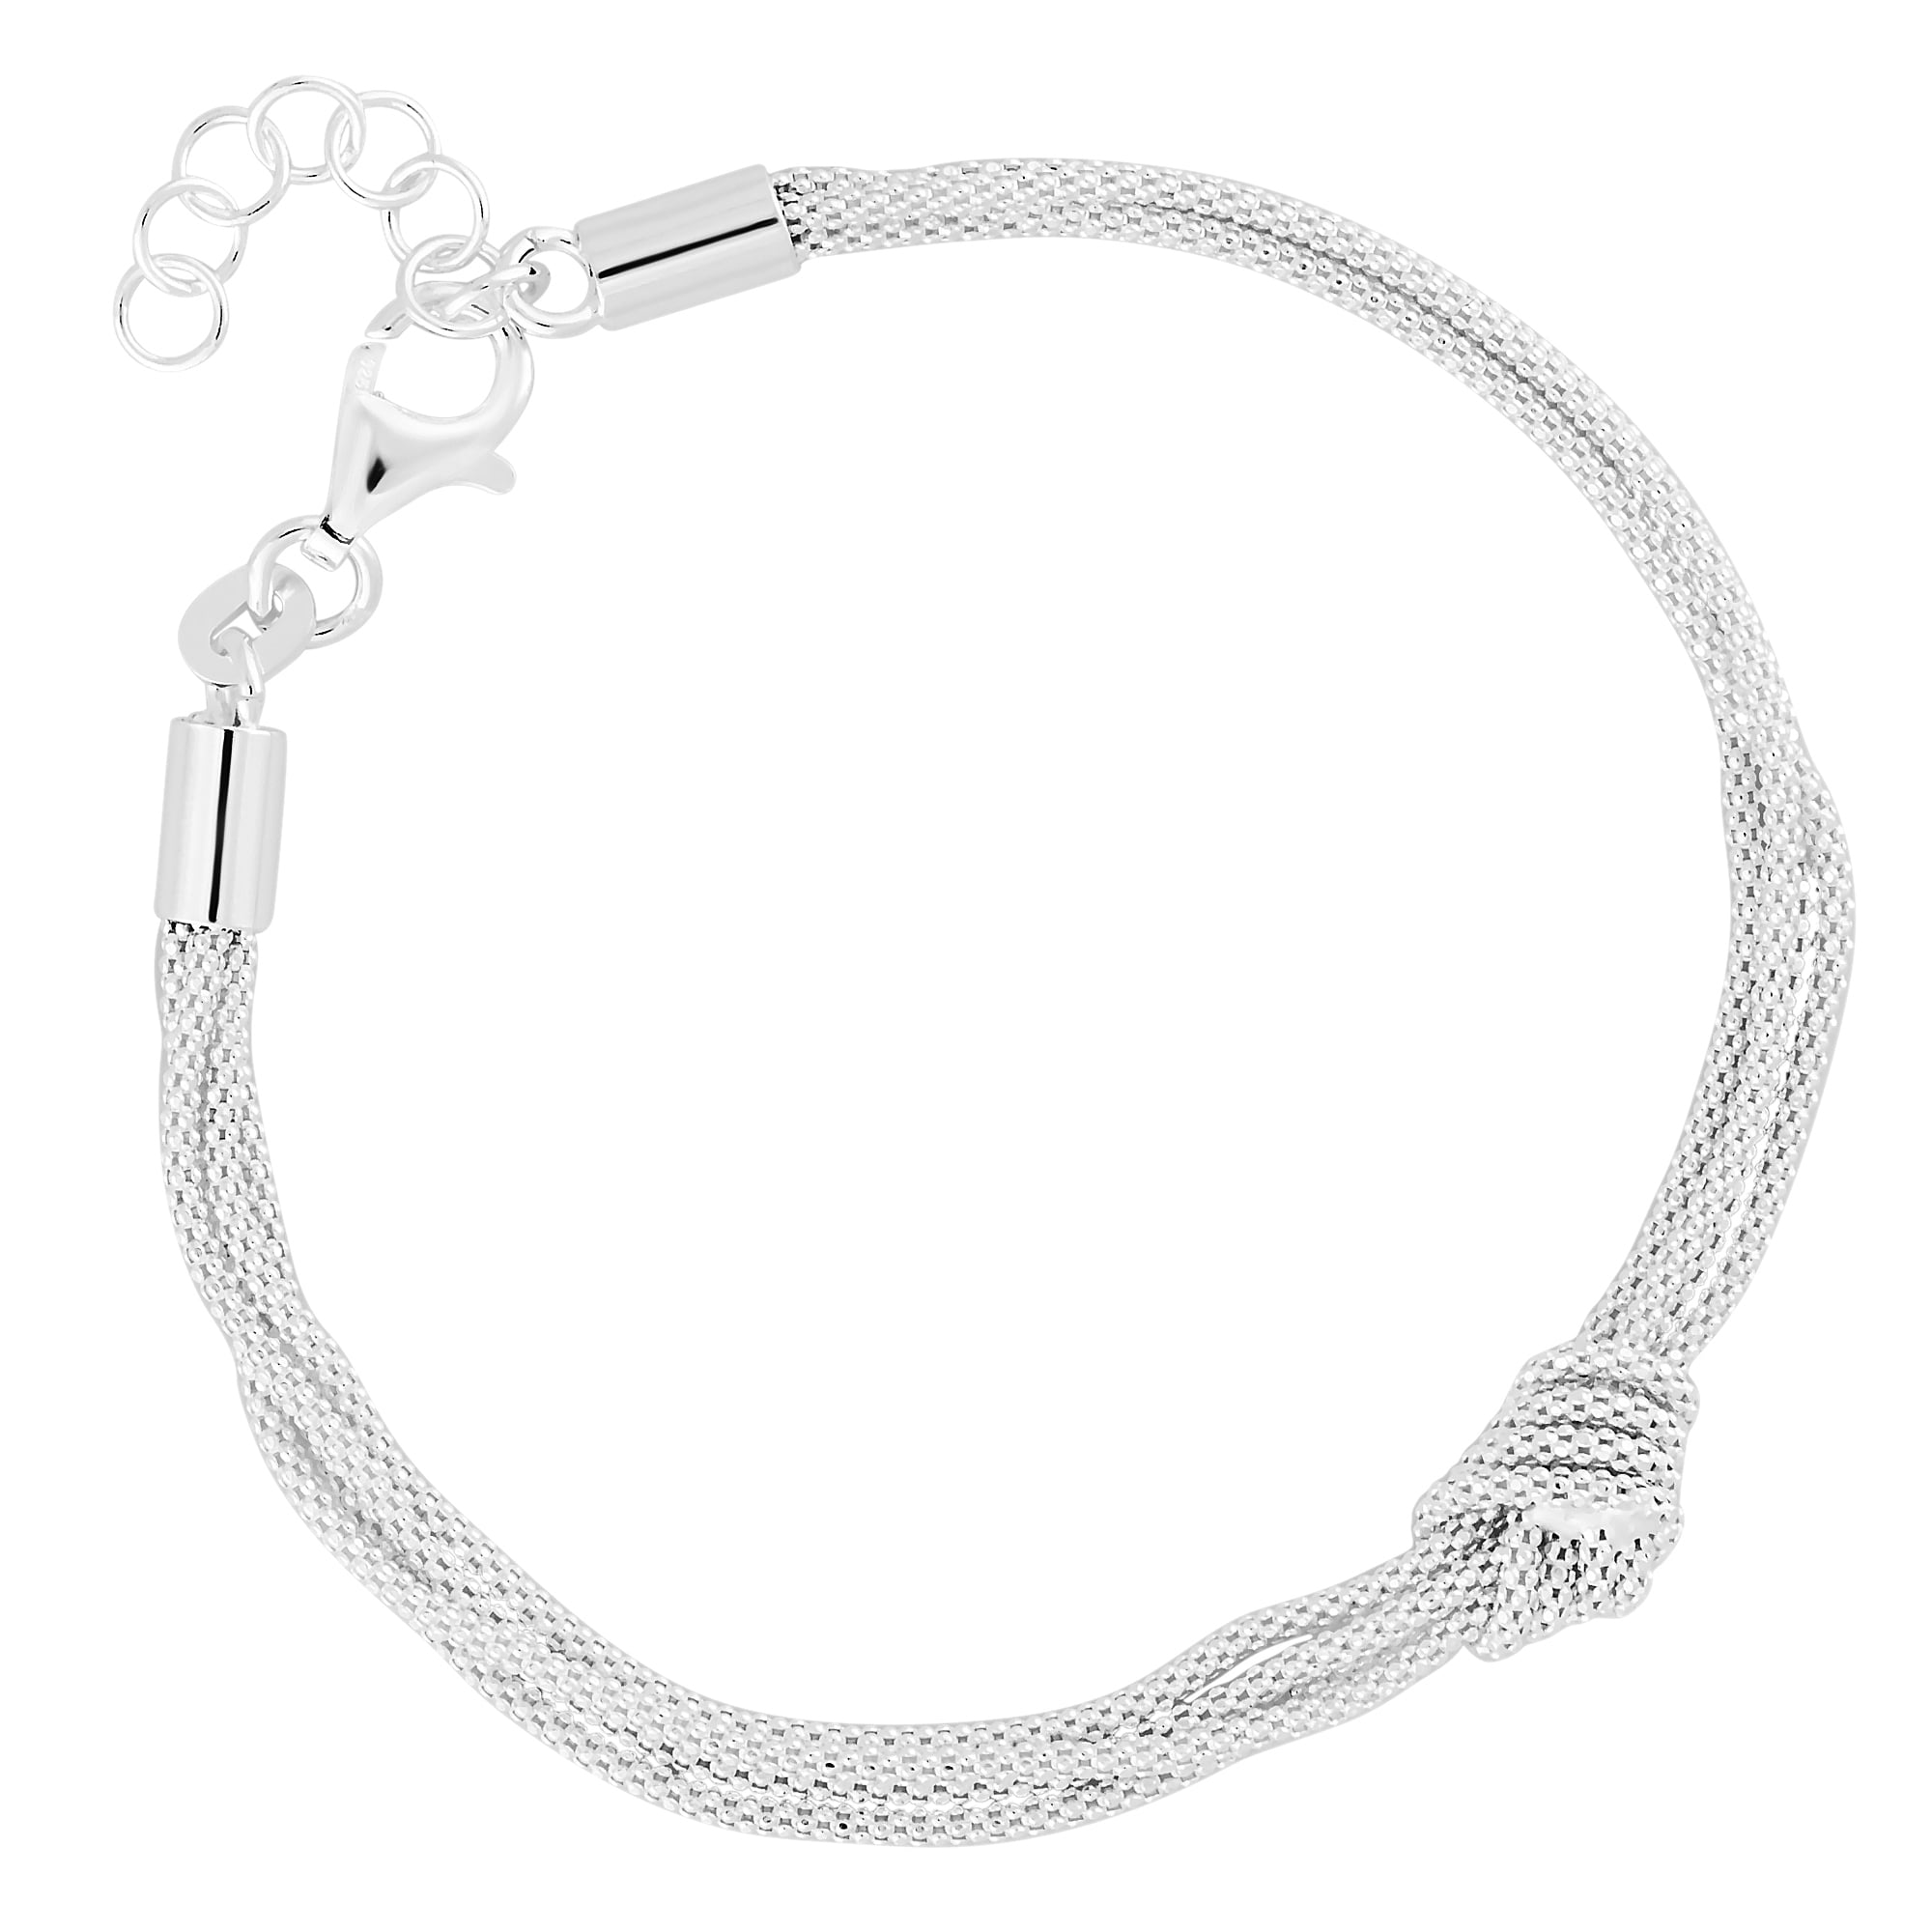 pearl or page product silver paz rose cultured com sterling qvc bracelets anklet ankle bracelet